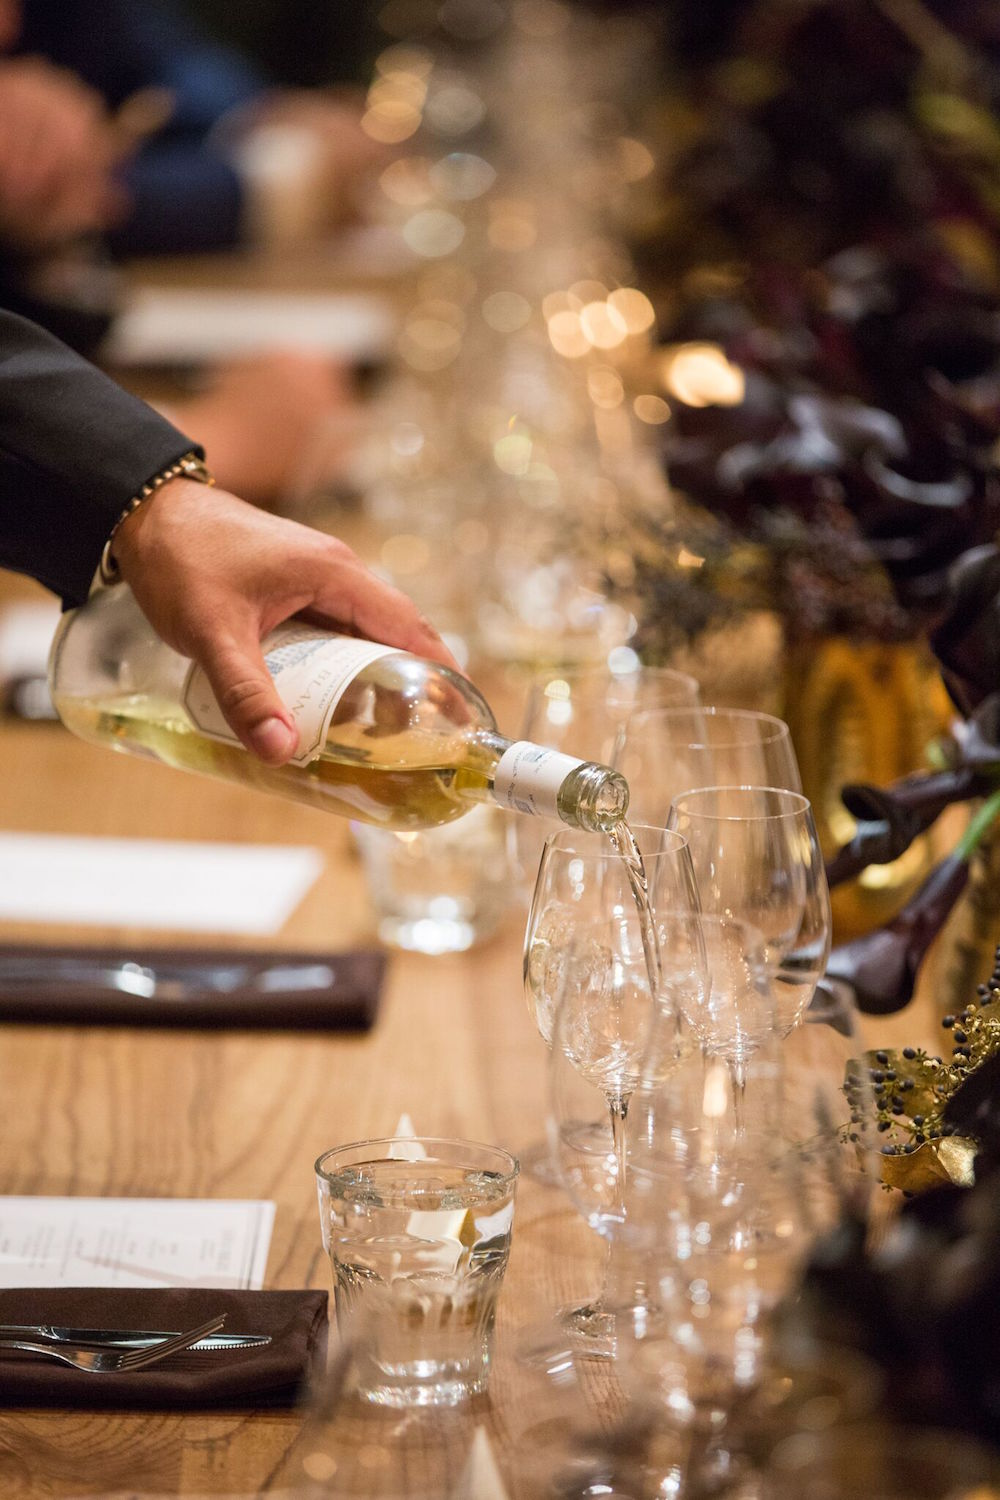 Château Margaux's white wine being poured at the dinner